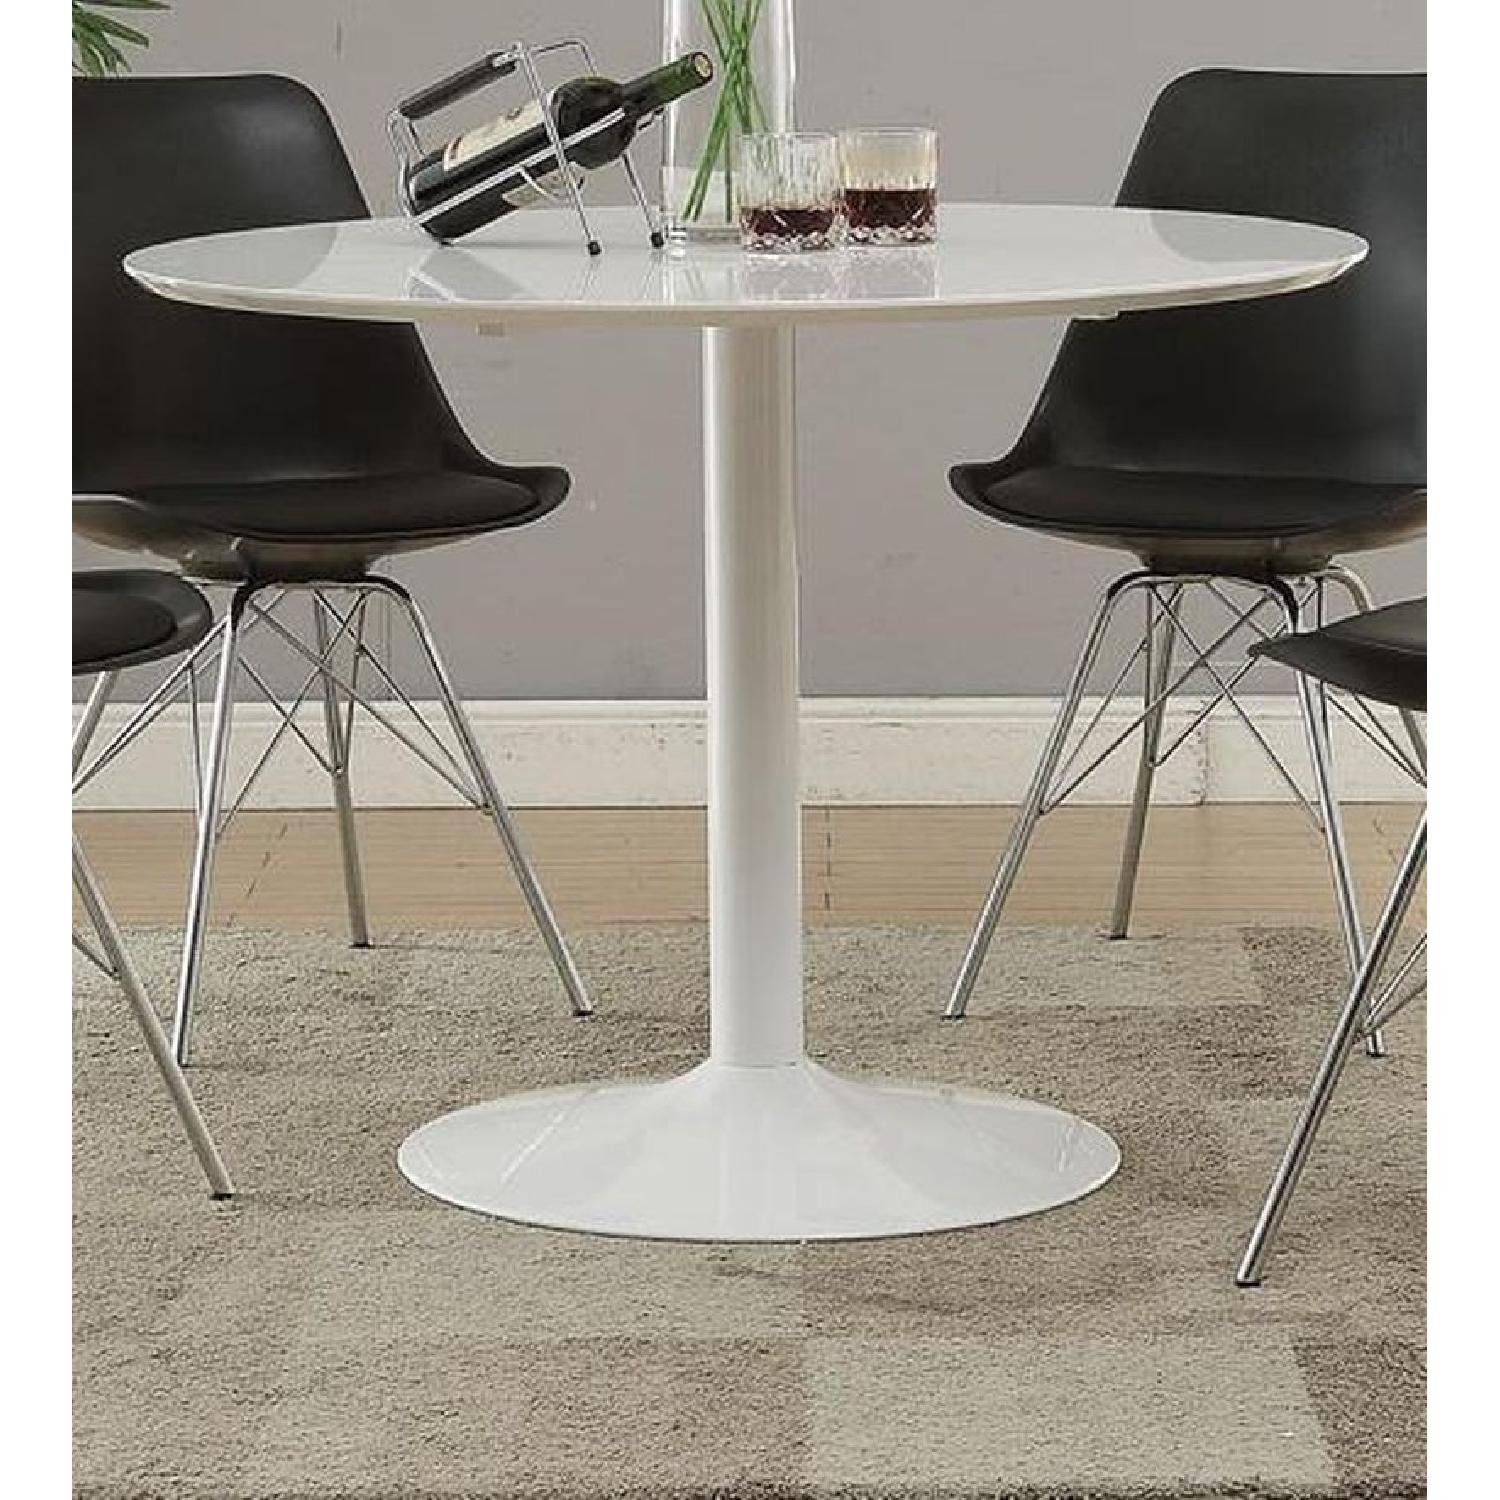 Mid Century Modern Style Dining Table in High Gloss Finish - image-3